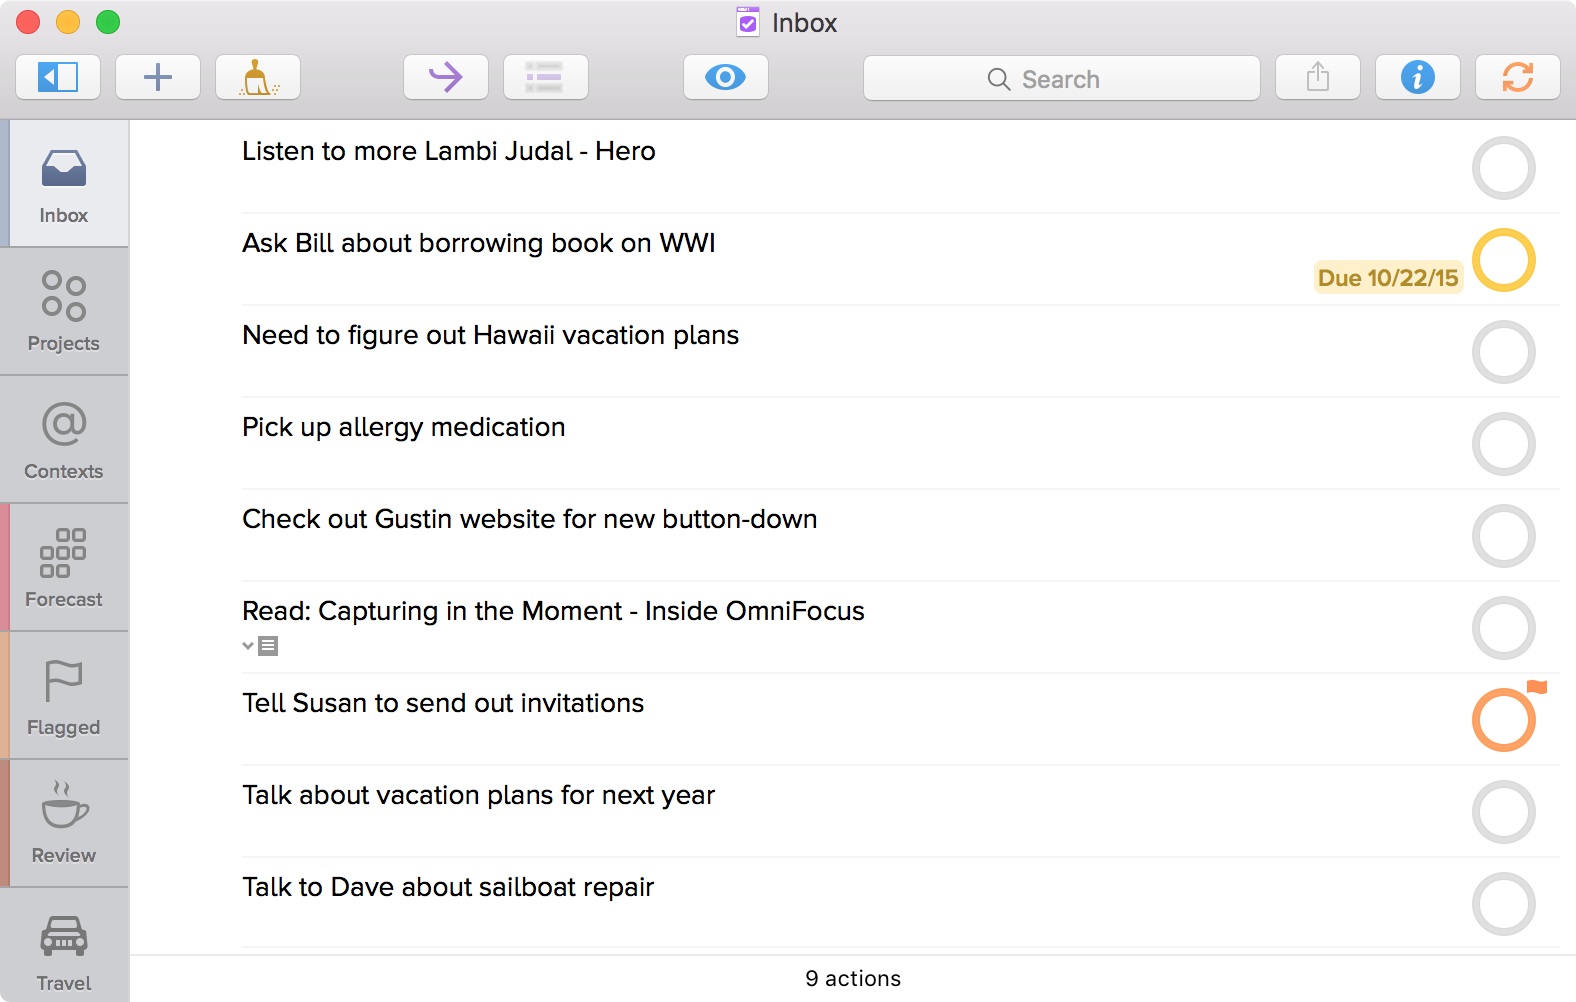 The OmniFocus Inbox